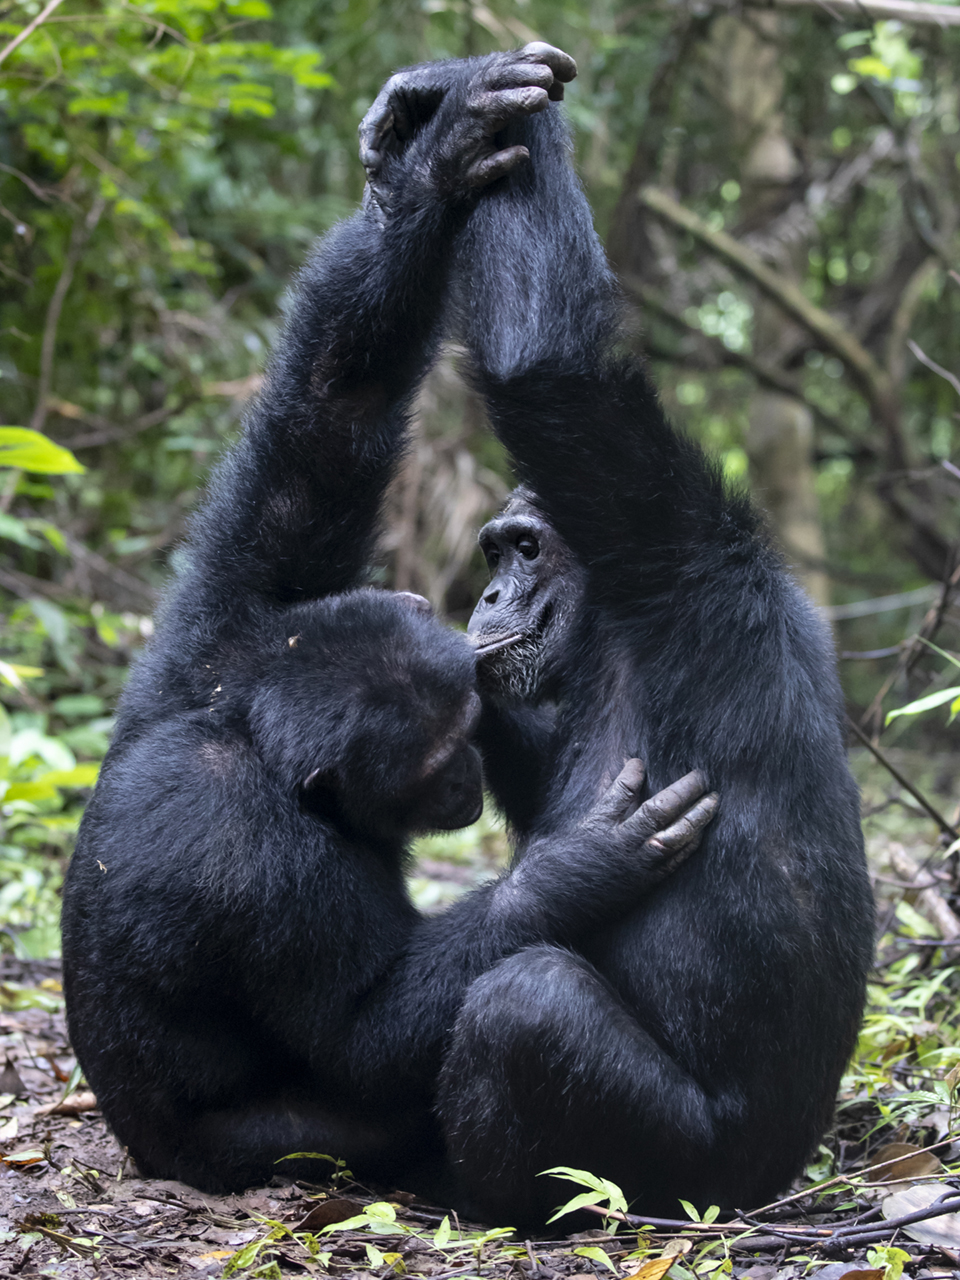 https://www.c4photosafaris.com/uploader/images/Chimps-2.jpg